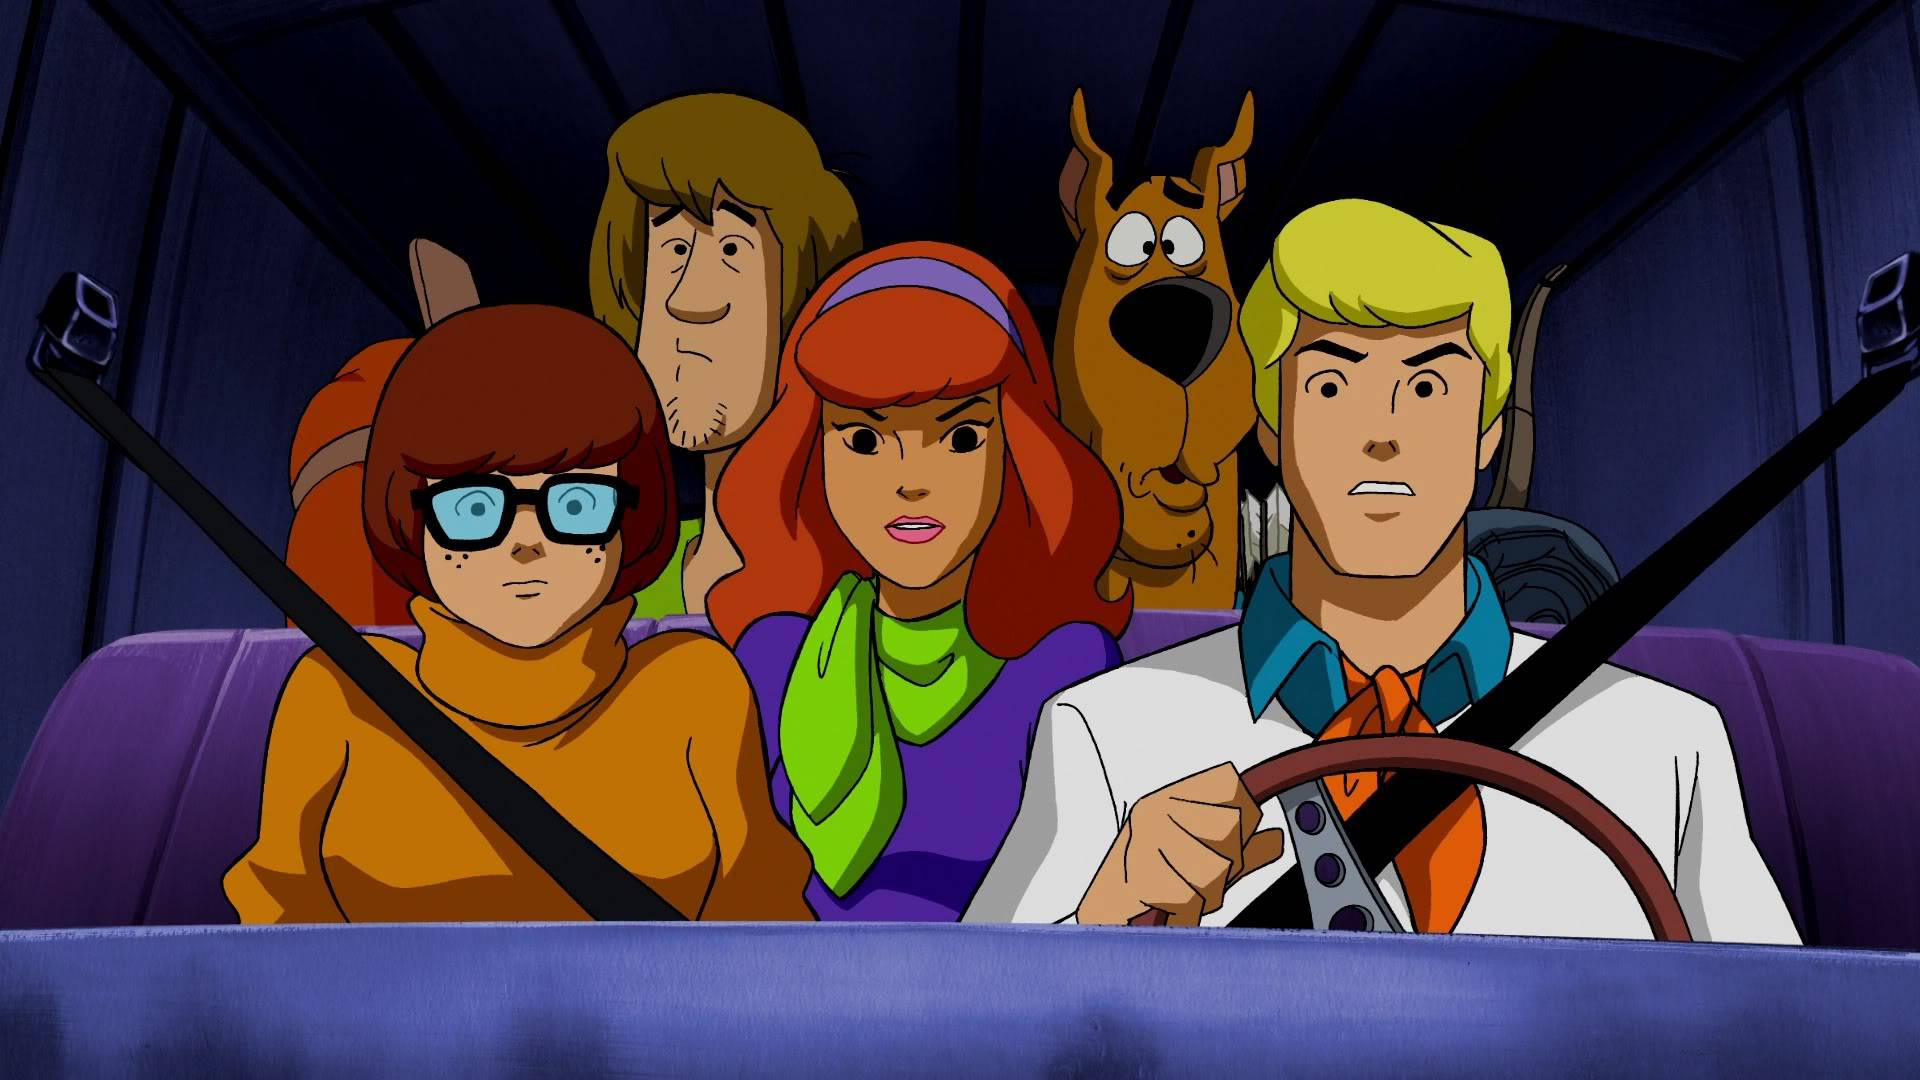 Scooby Doo Wallpapers - Wallpaper Cave